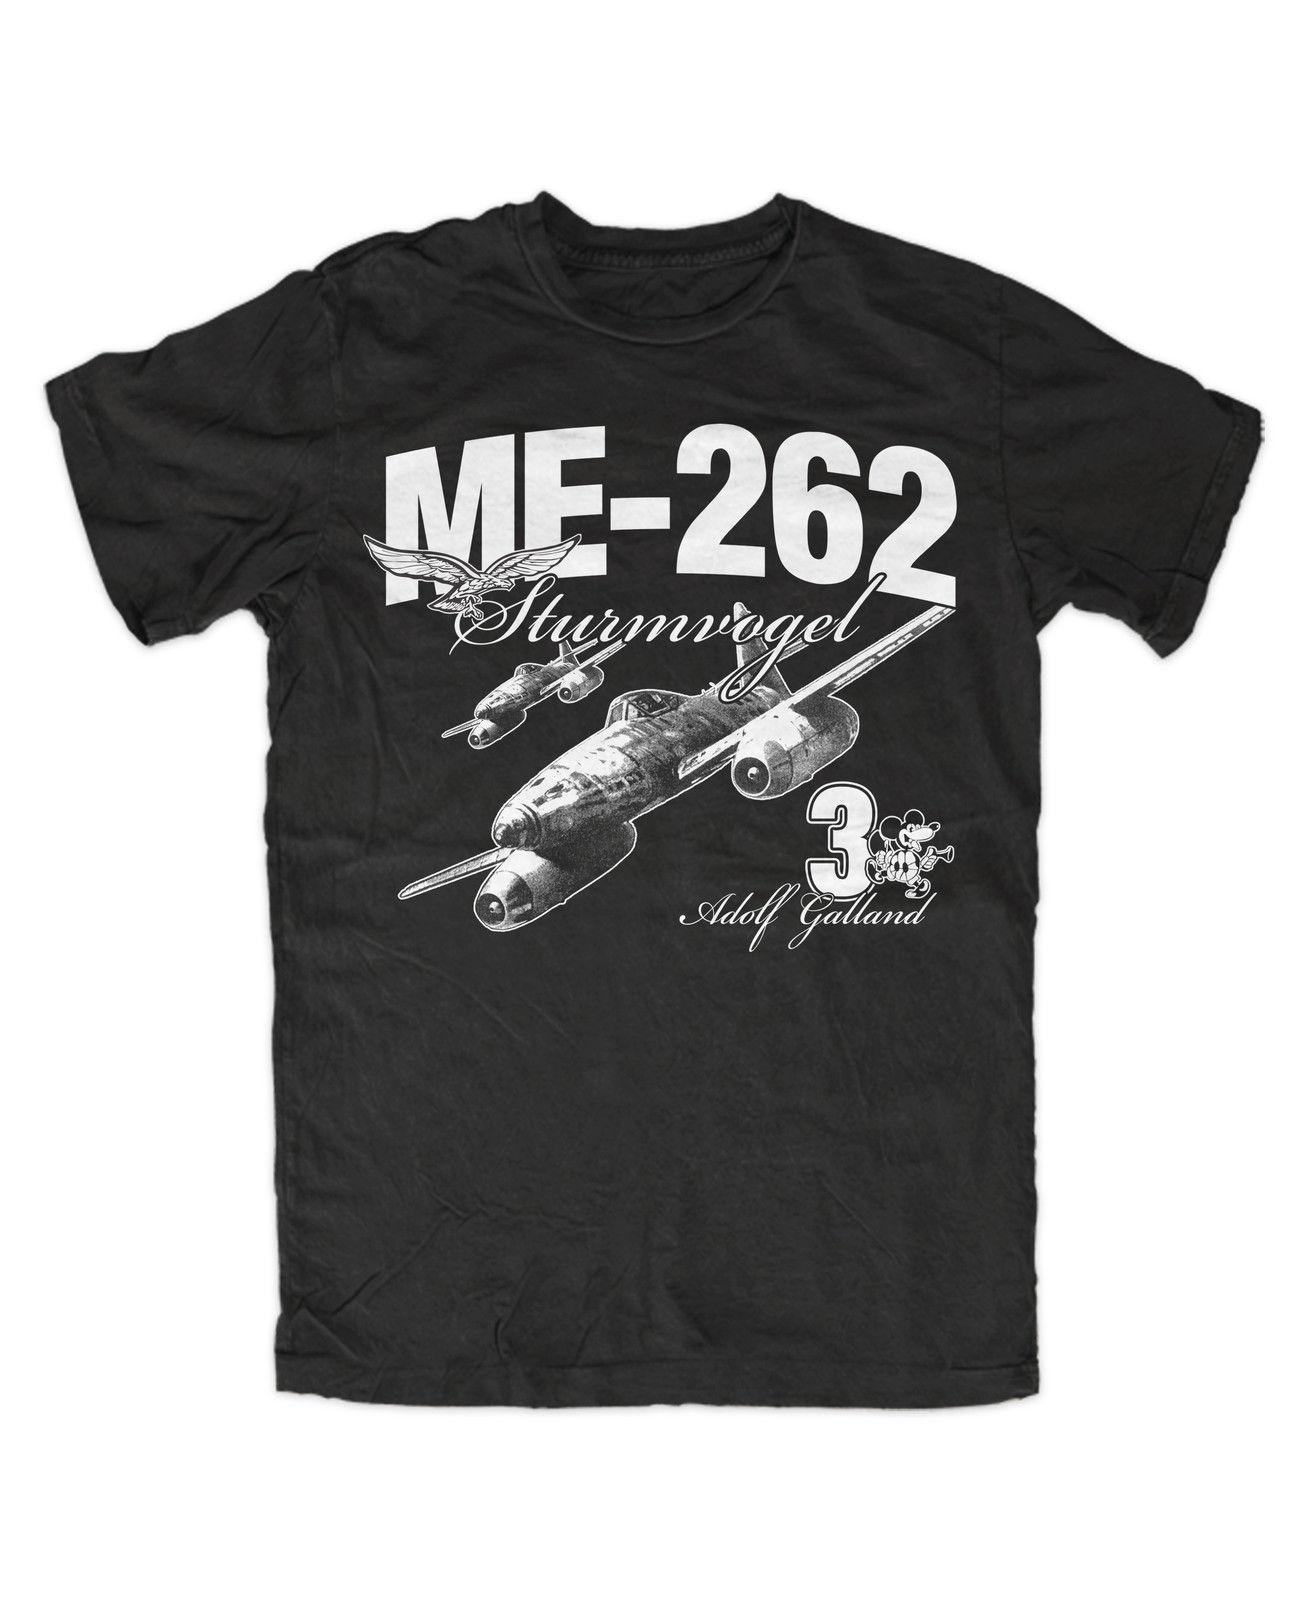 T-Shirt Summer Novelty Cartoon T Shirt ME-262 Galland T-Shirt BW Legende Flieger Ass Movie Shirt image